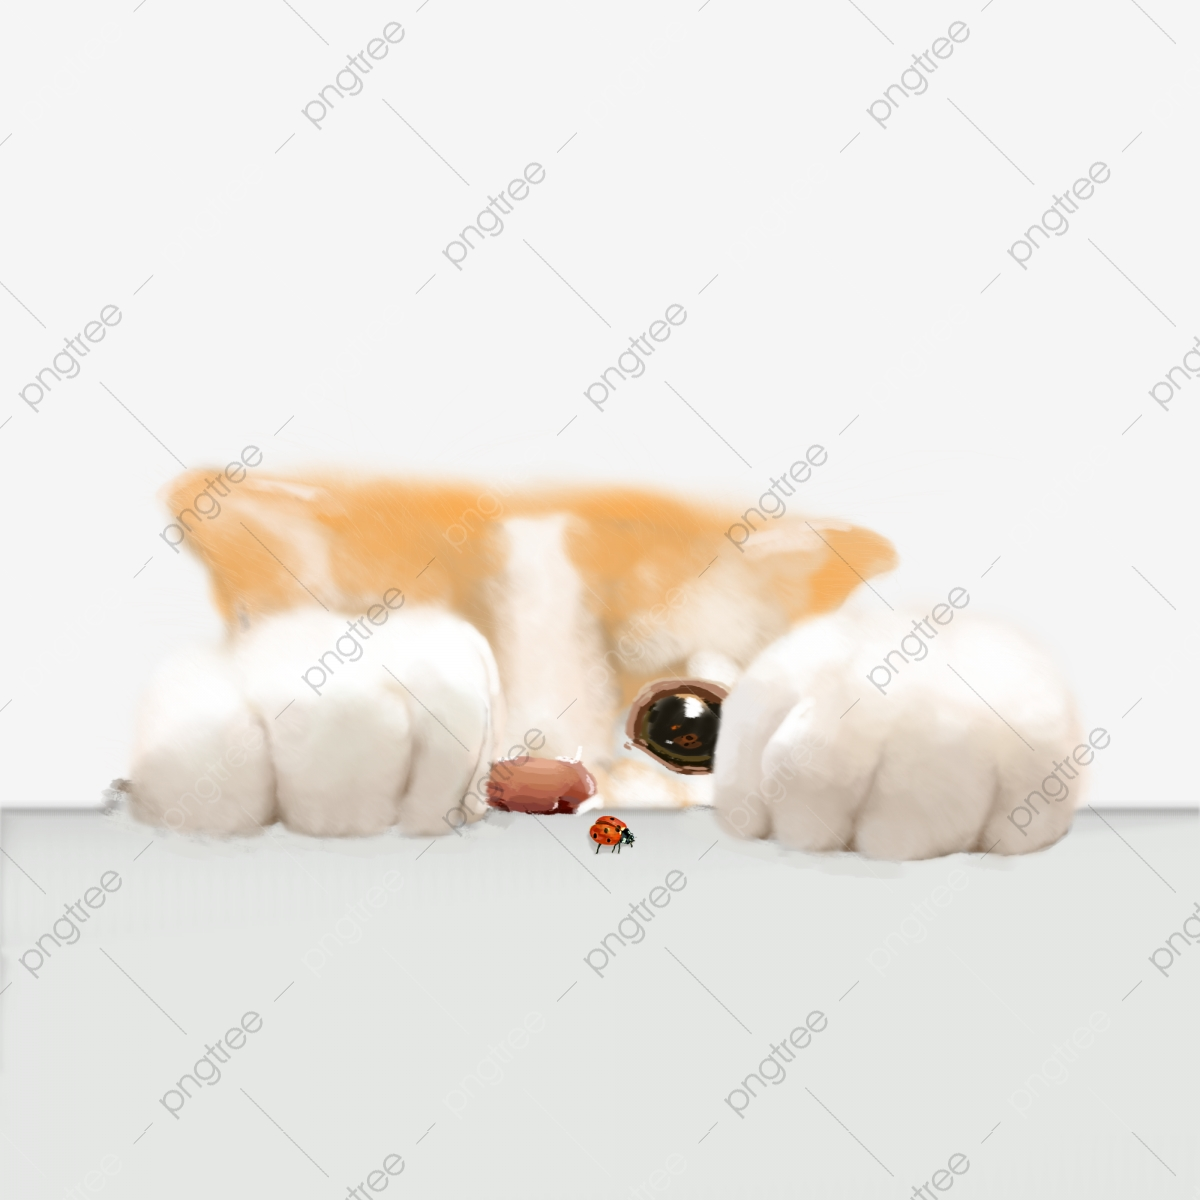 Simulation Cat Cute Pet Download Simulation Cat Cat Cute Cat Png Transparent Clipart Image And Psd File For Free Download